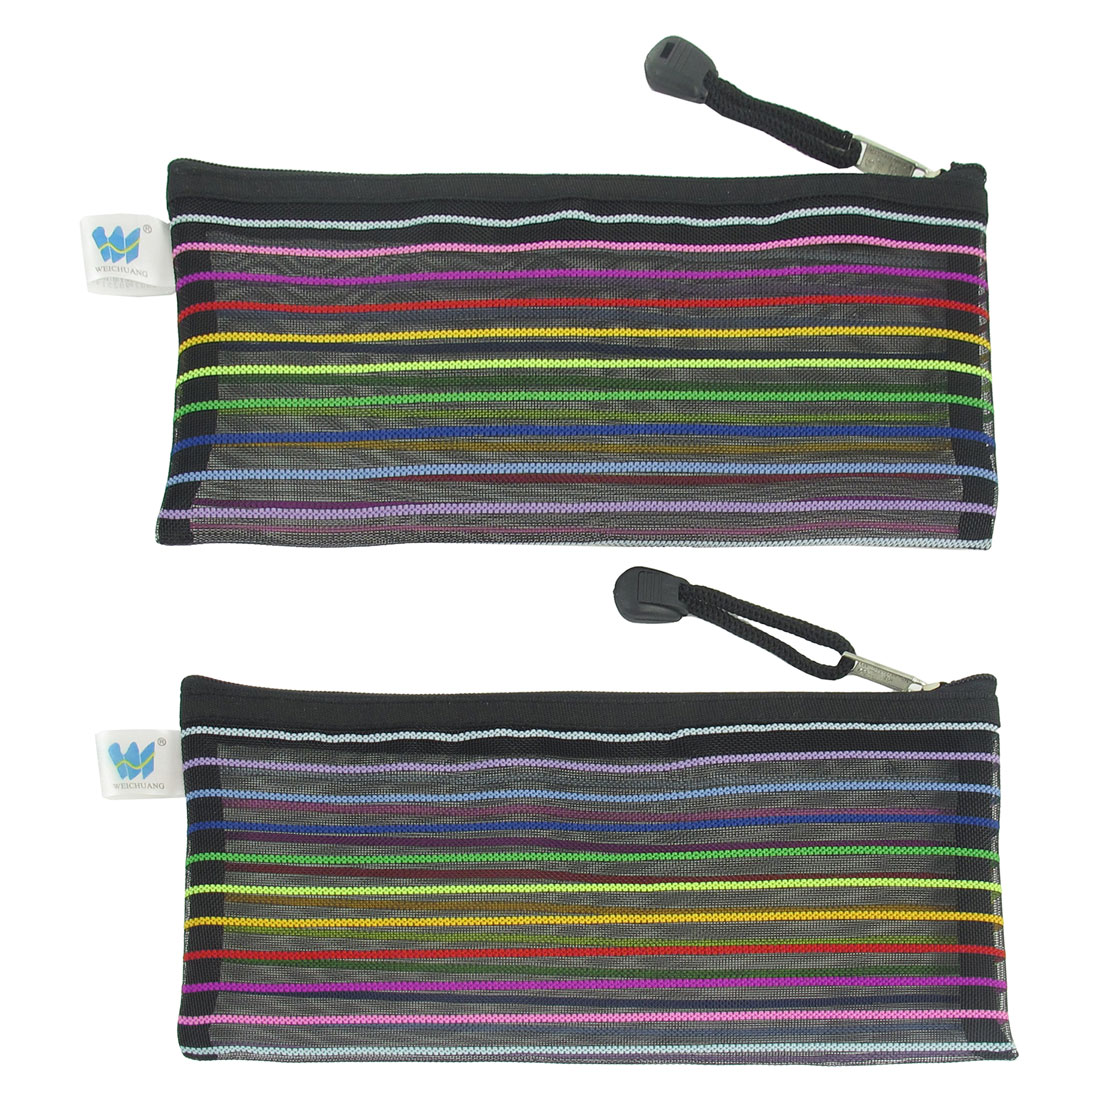 Nylon Multicolor Stripe Pattern Sheer Black File Holder Bag 2 Pcs